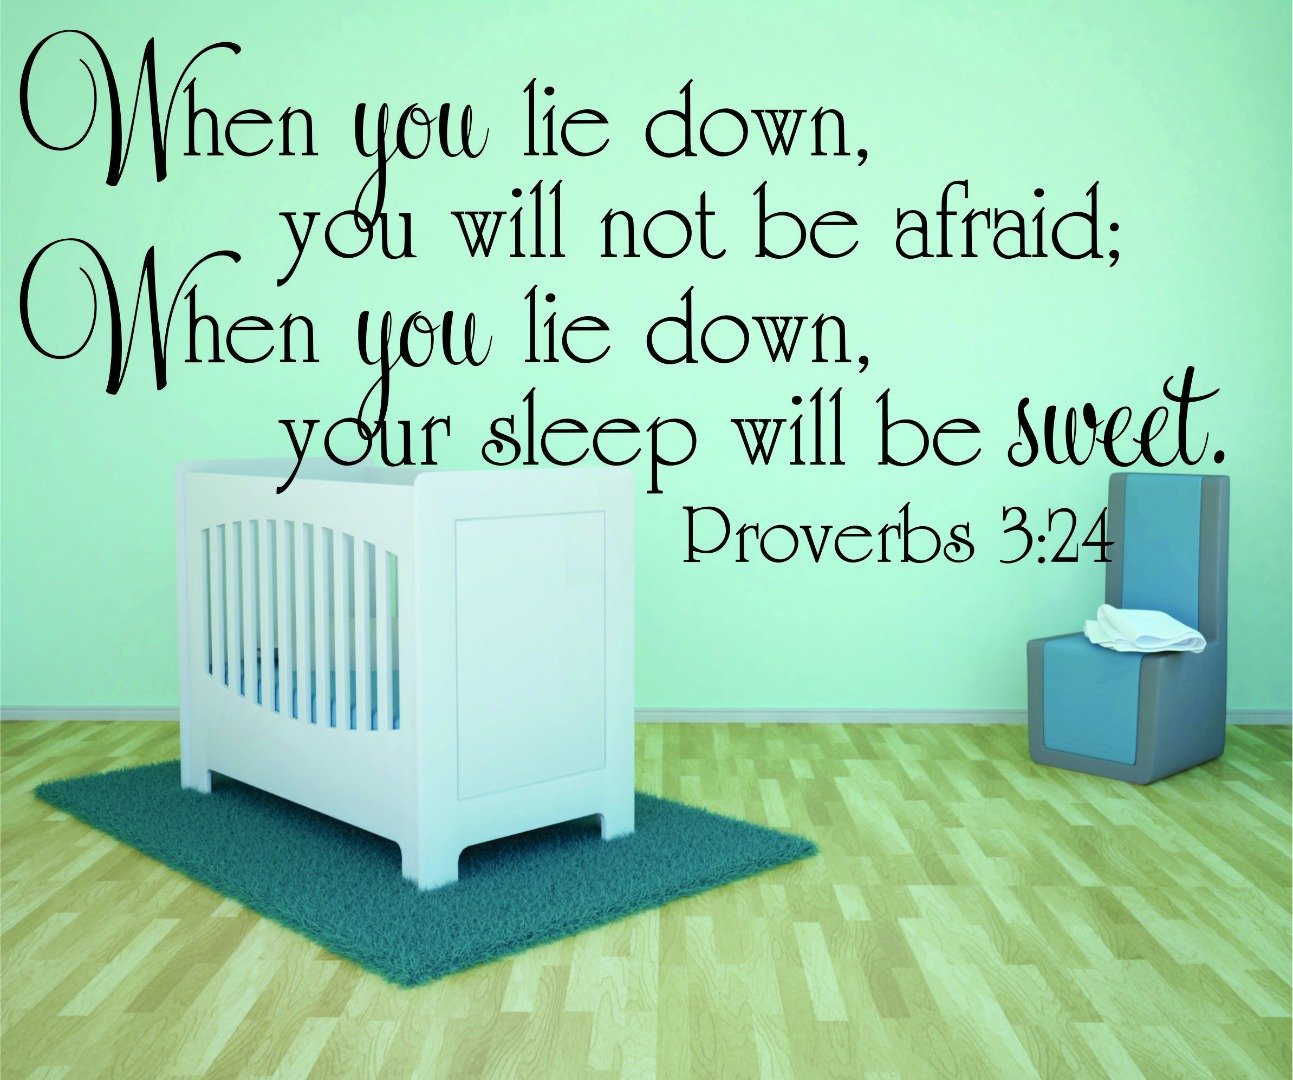 Design with Vinyl RAD 982 3 When You Lie Down You Will Not Be Afraid; When You Lie Down Your Sleep Will Be Sweet. Proverbs 3;24 Bible Quote KJV Baby Boy Girl Wall Decal Black 20 x 30